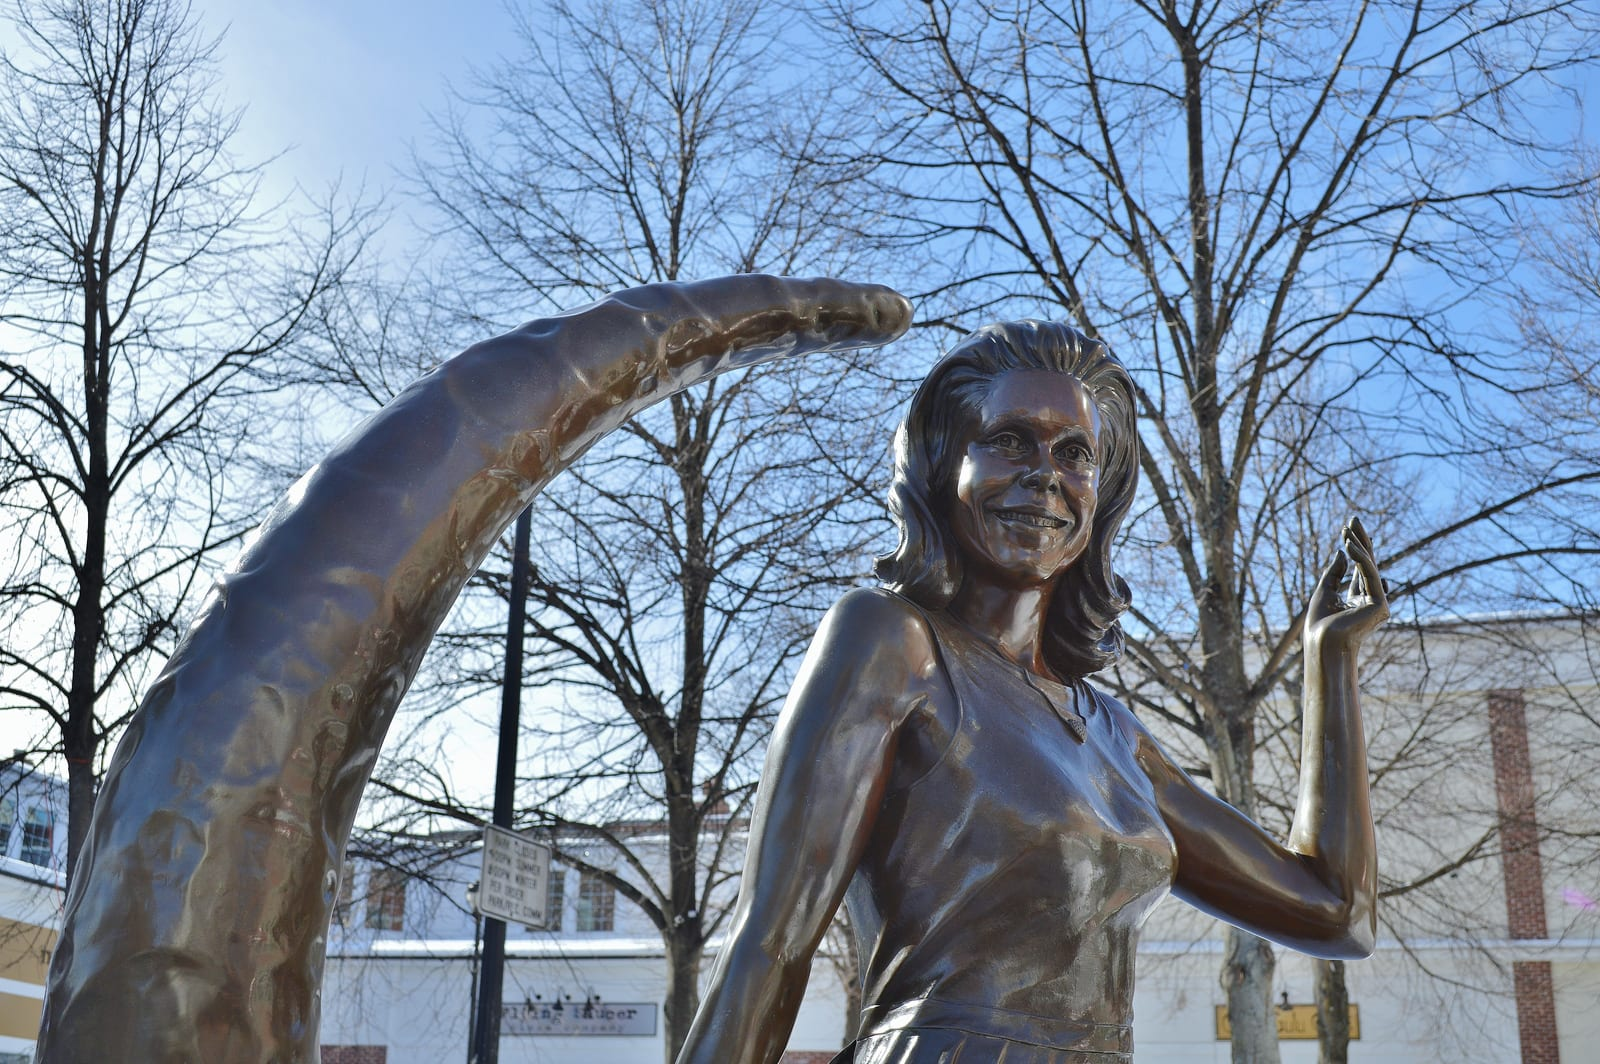 Bewitched Statue of Samantha, played by Elizabeth Montgomery in Salem | ©Flickr/Massachusetts office of tourism